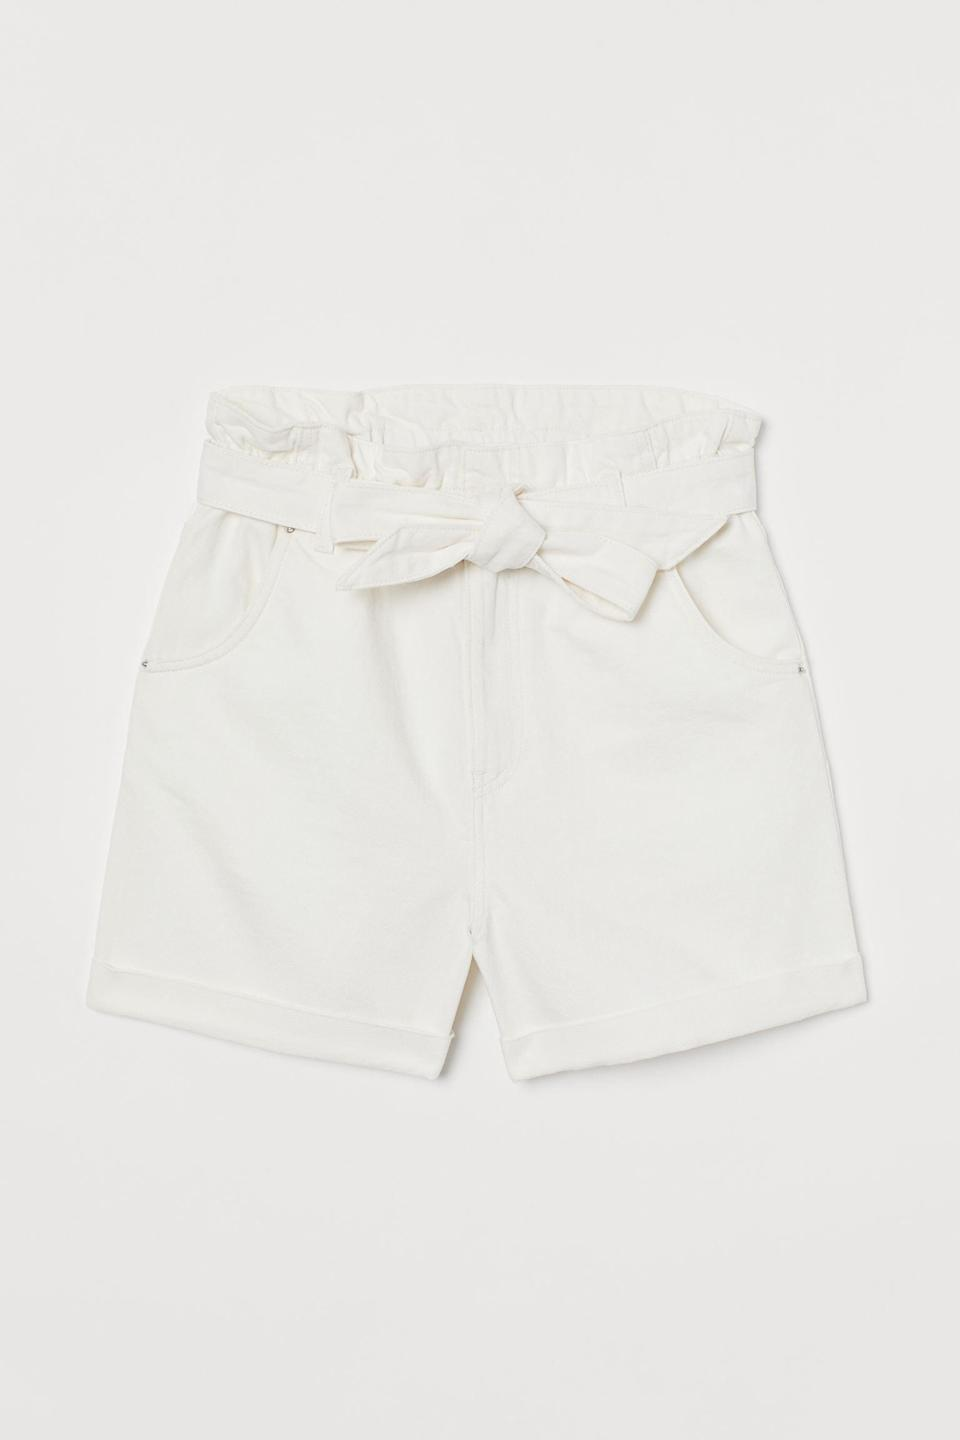 <p>These <span>H&amp;M Denim Paper-Bag Shorts</span> ($13, originally $30) feature both front and back pockets, making them super practical. They also come in a few different washes.</p>